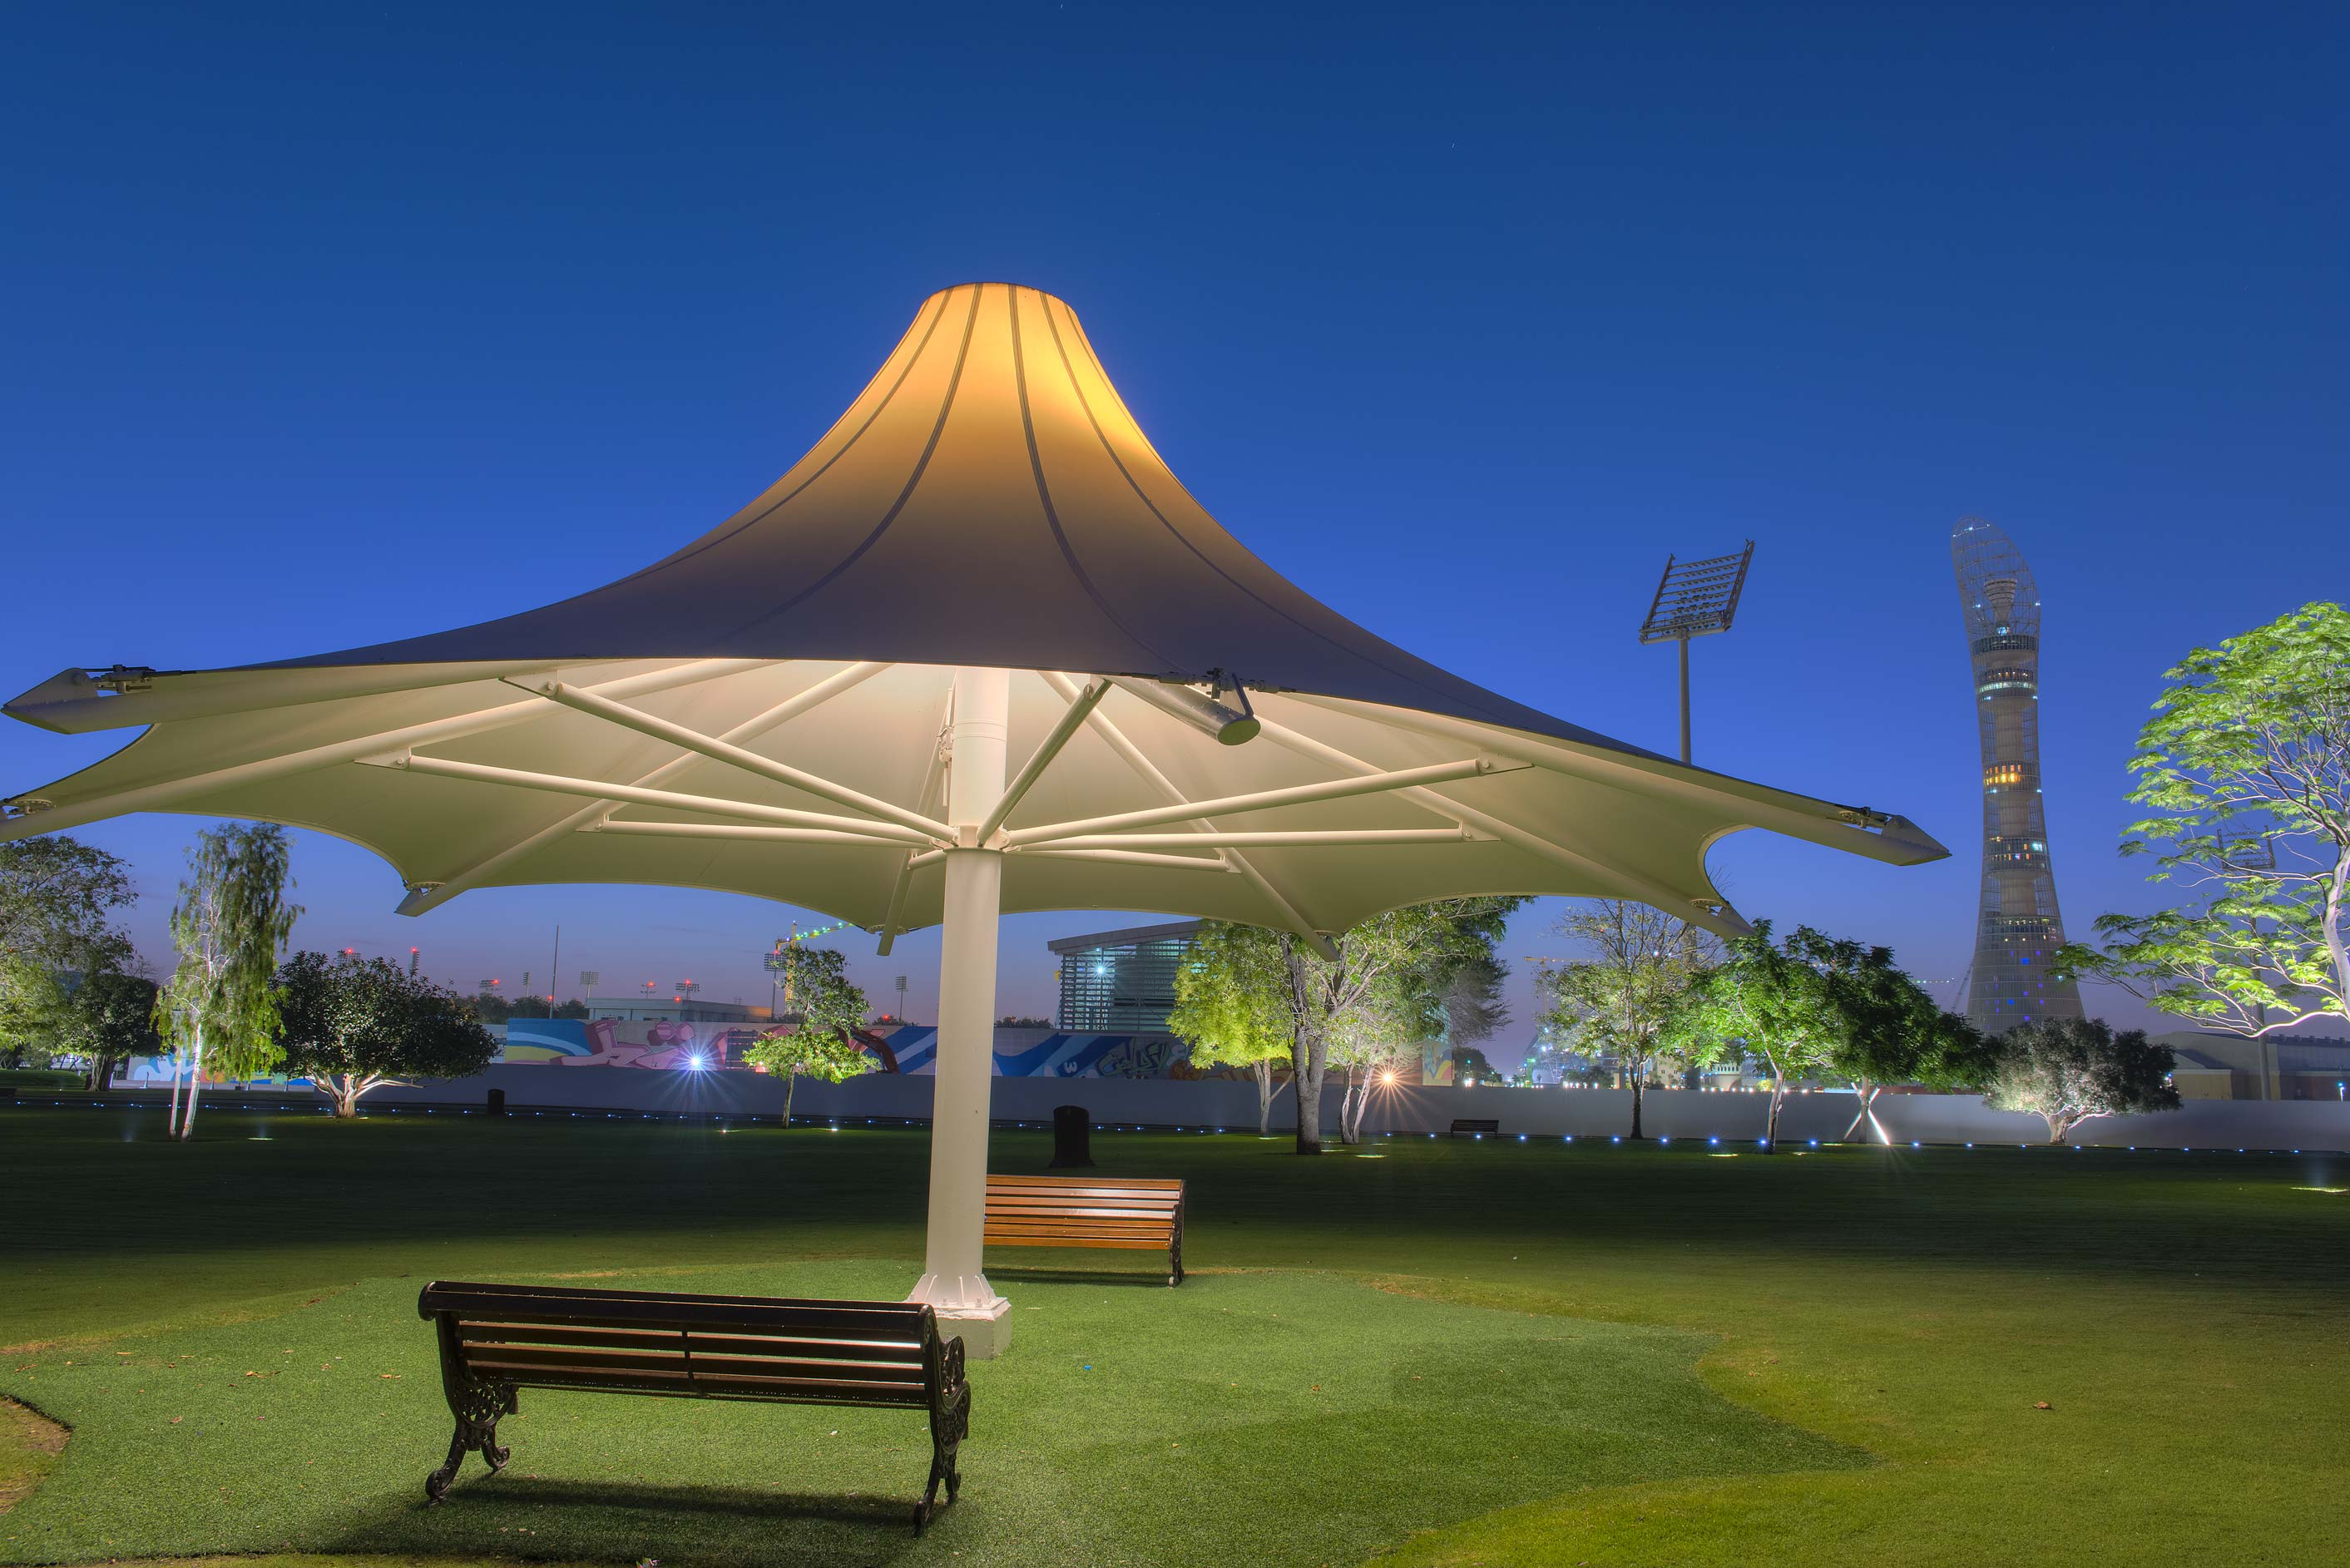 Umbrella shade at early morning in Aspire Park. Doha, Qatar